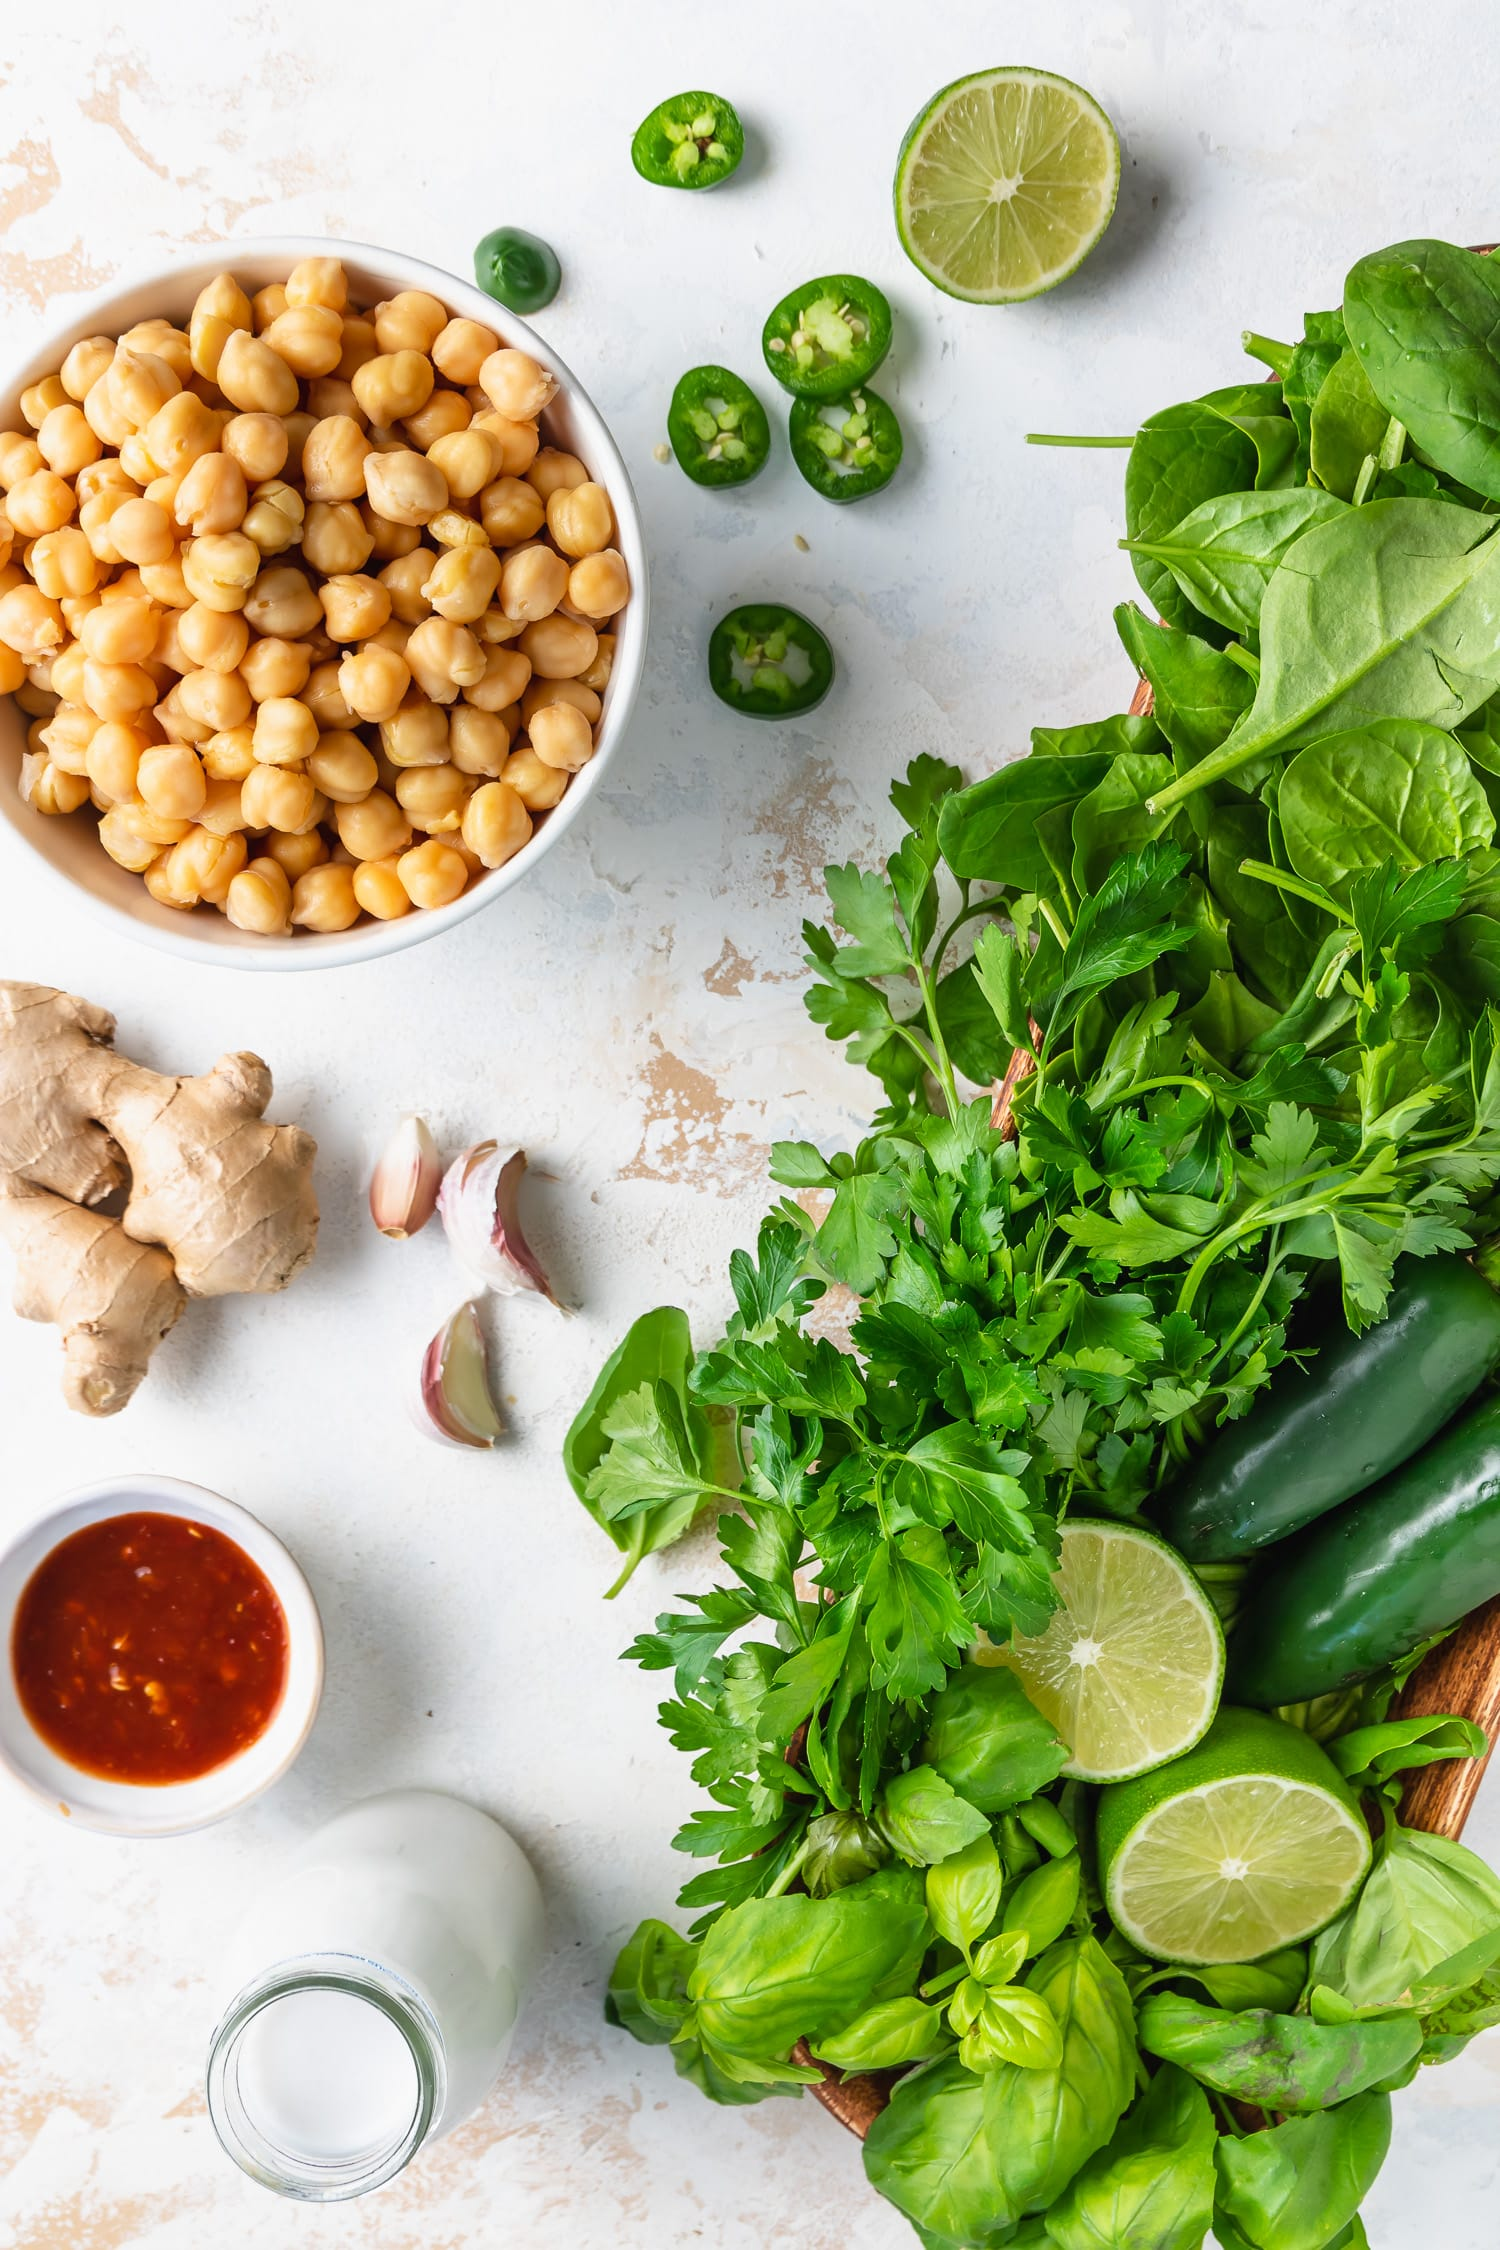 ingredients - chickpeas, limes, herbs, jalapenos, ginger, sambal, coconut milk on light background